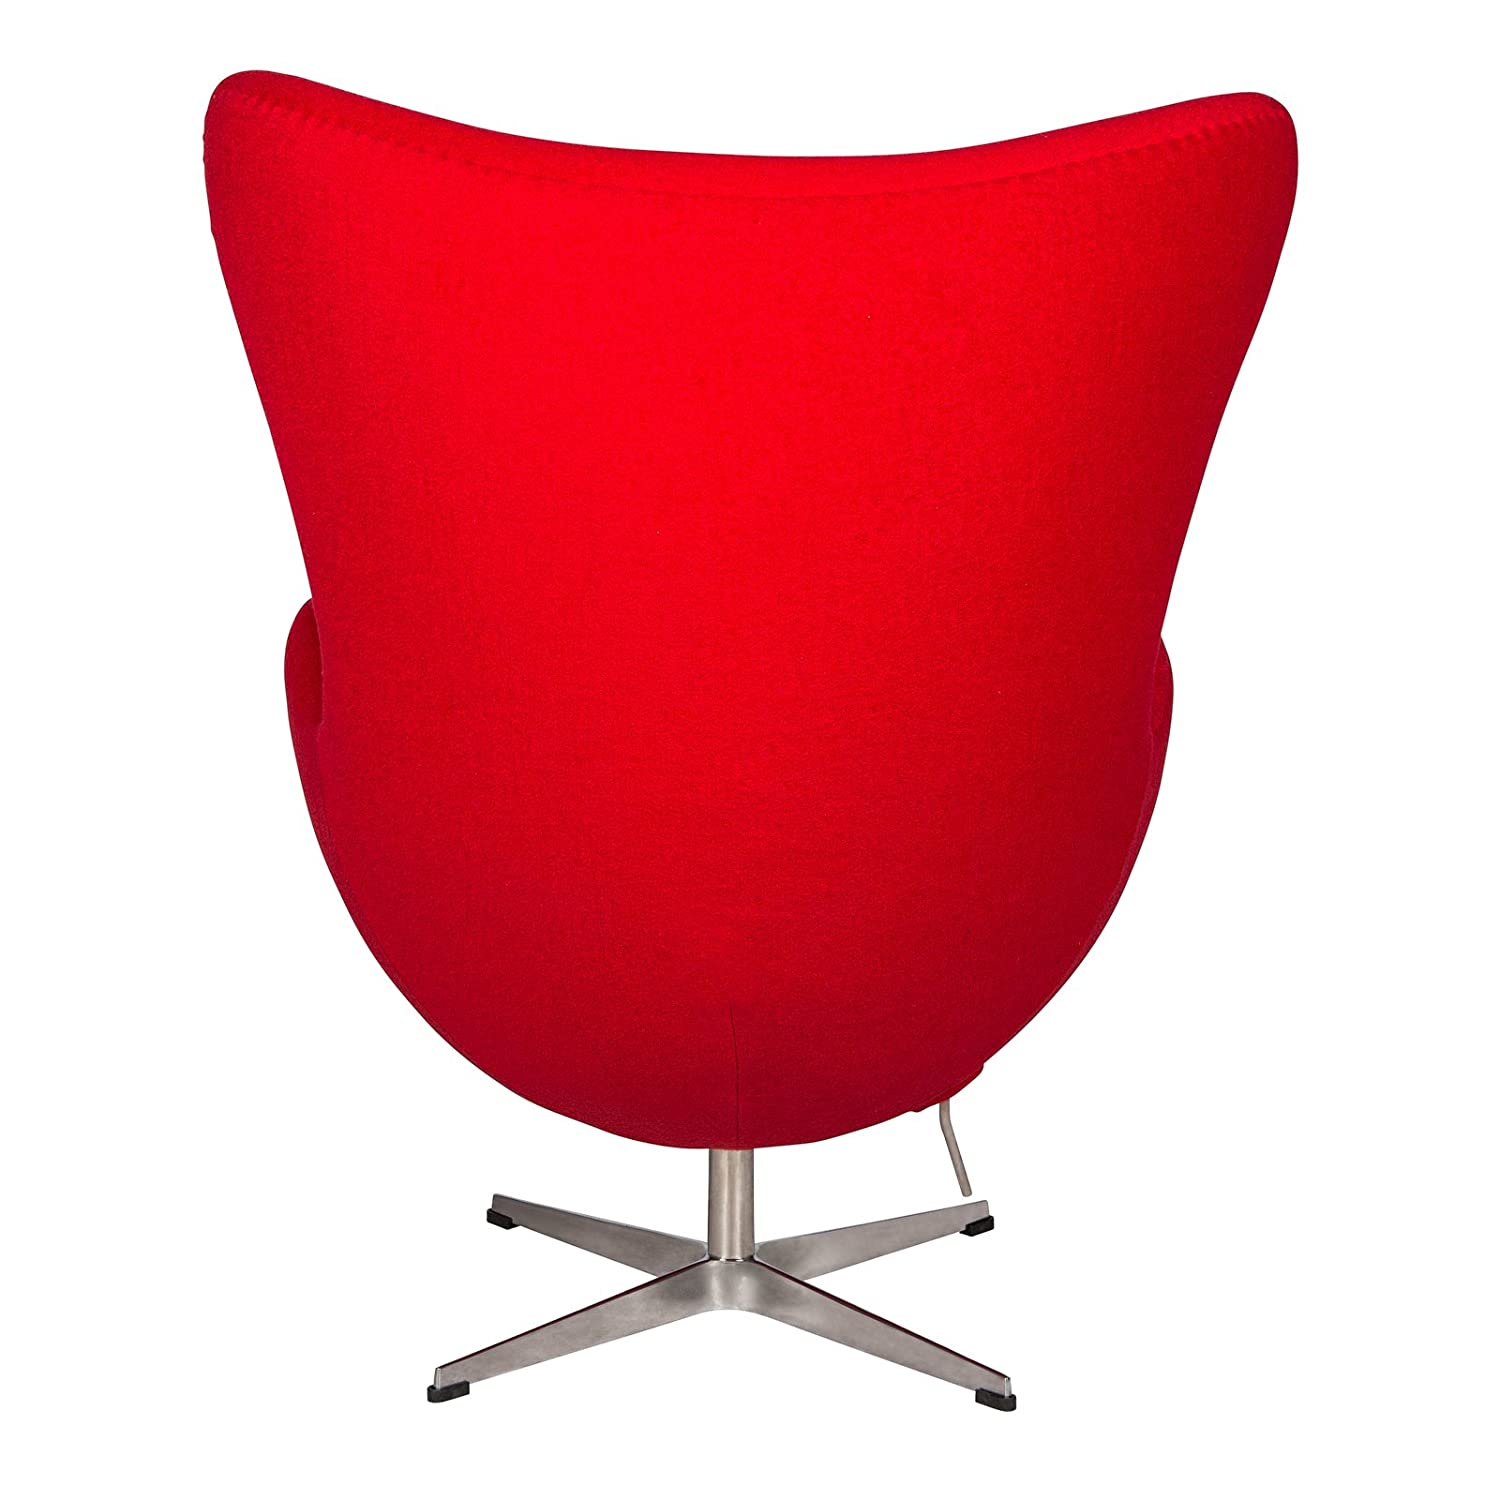 Merveilleux Amazon.com: LeisureMod Modena Mid Century Fabric Accent Egg Chair With  Tilt Lock Mechanism In Red Wool: Kitchen U0026 Dining